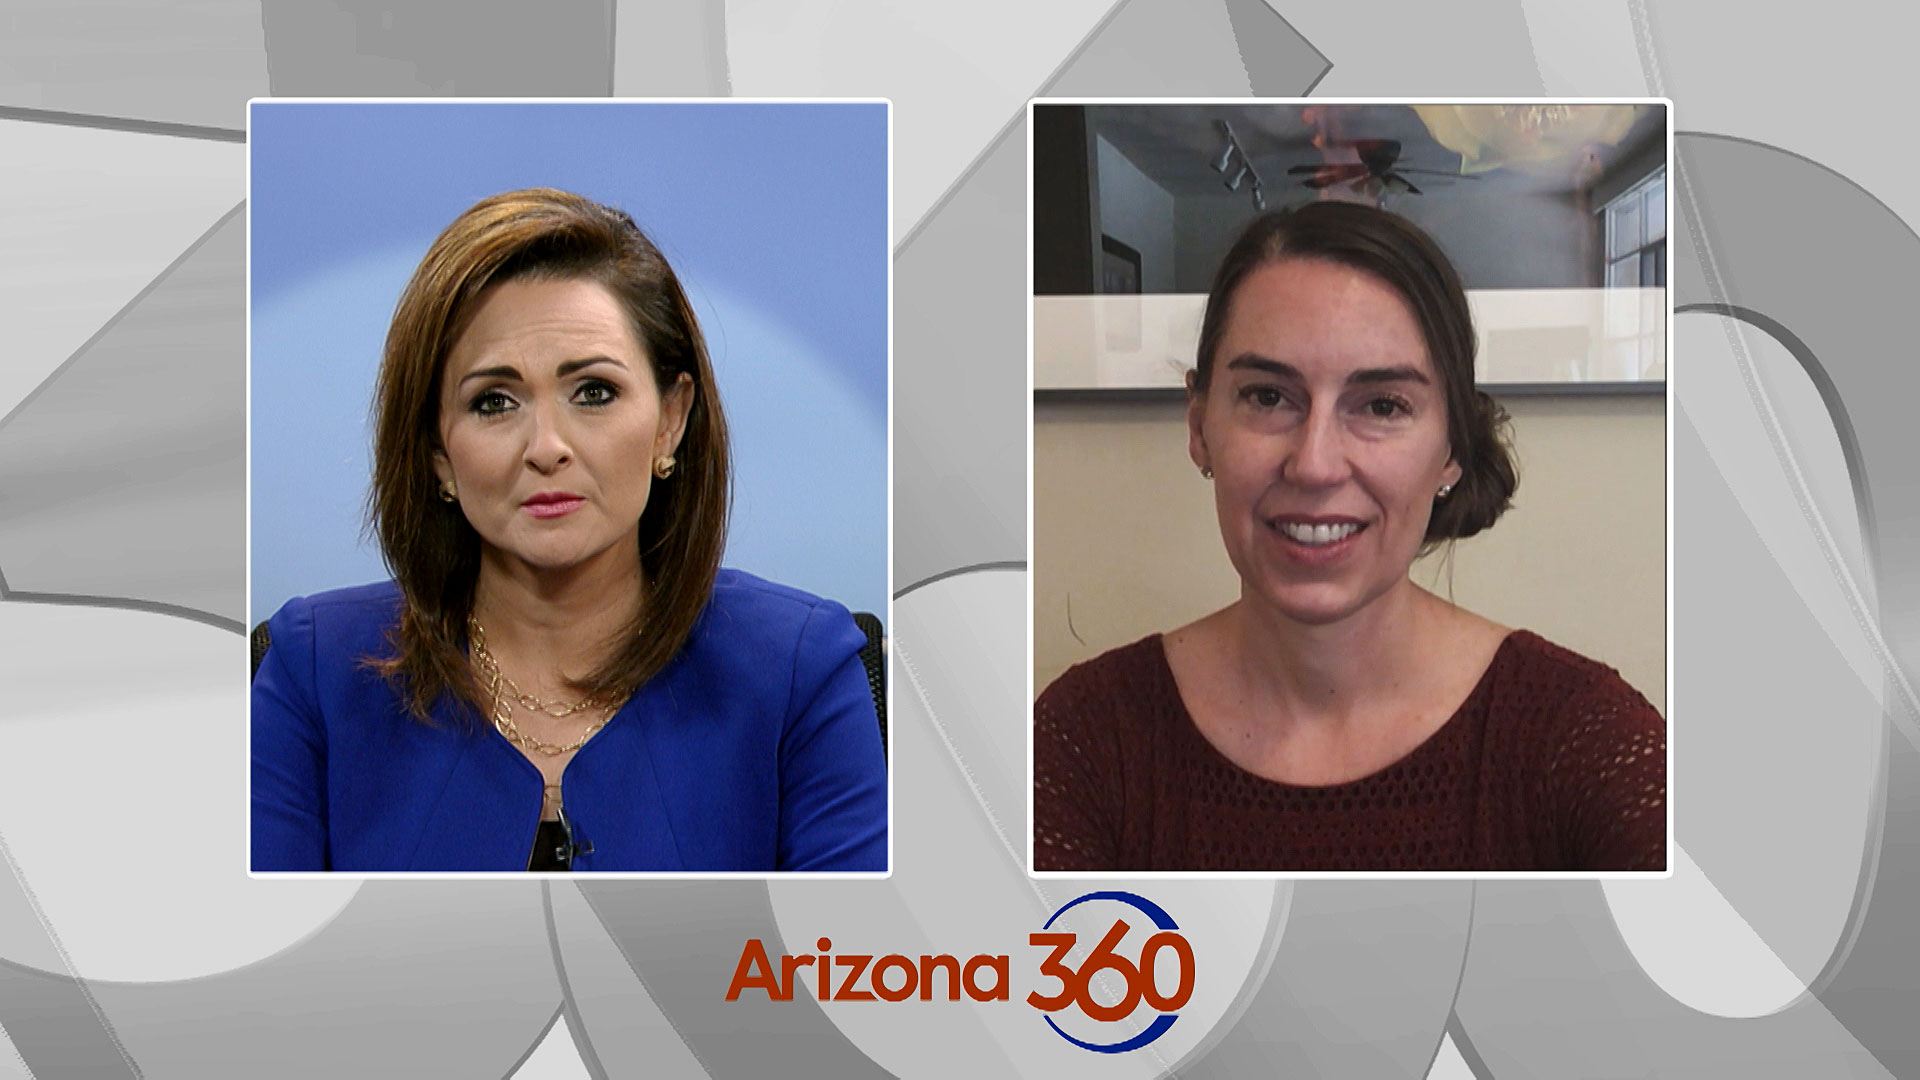 Laura Conover, the Democratic nominee for Pima County Attorney, interviews with Arizona 360 host Lorraine Rivera on August 18, 2020.